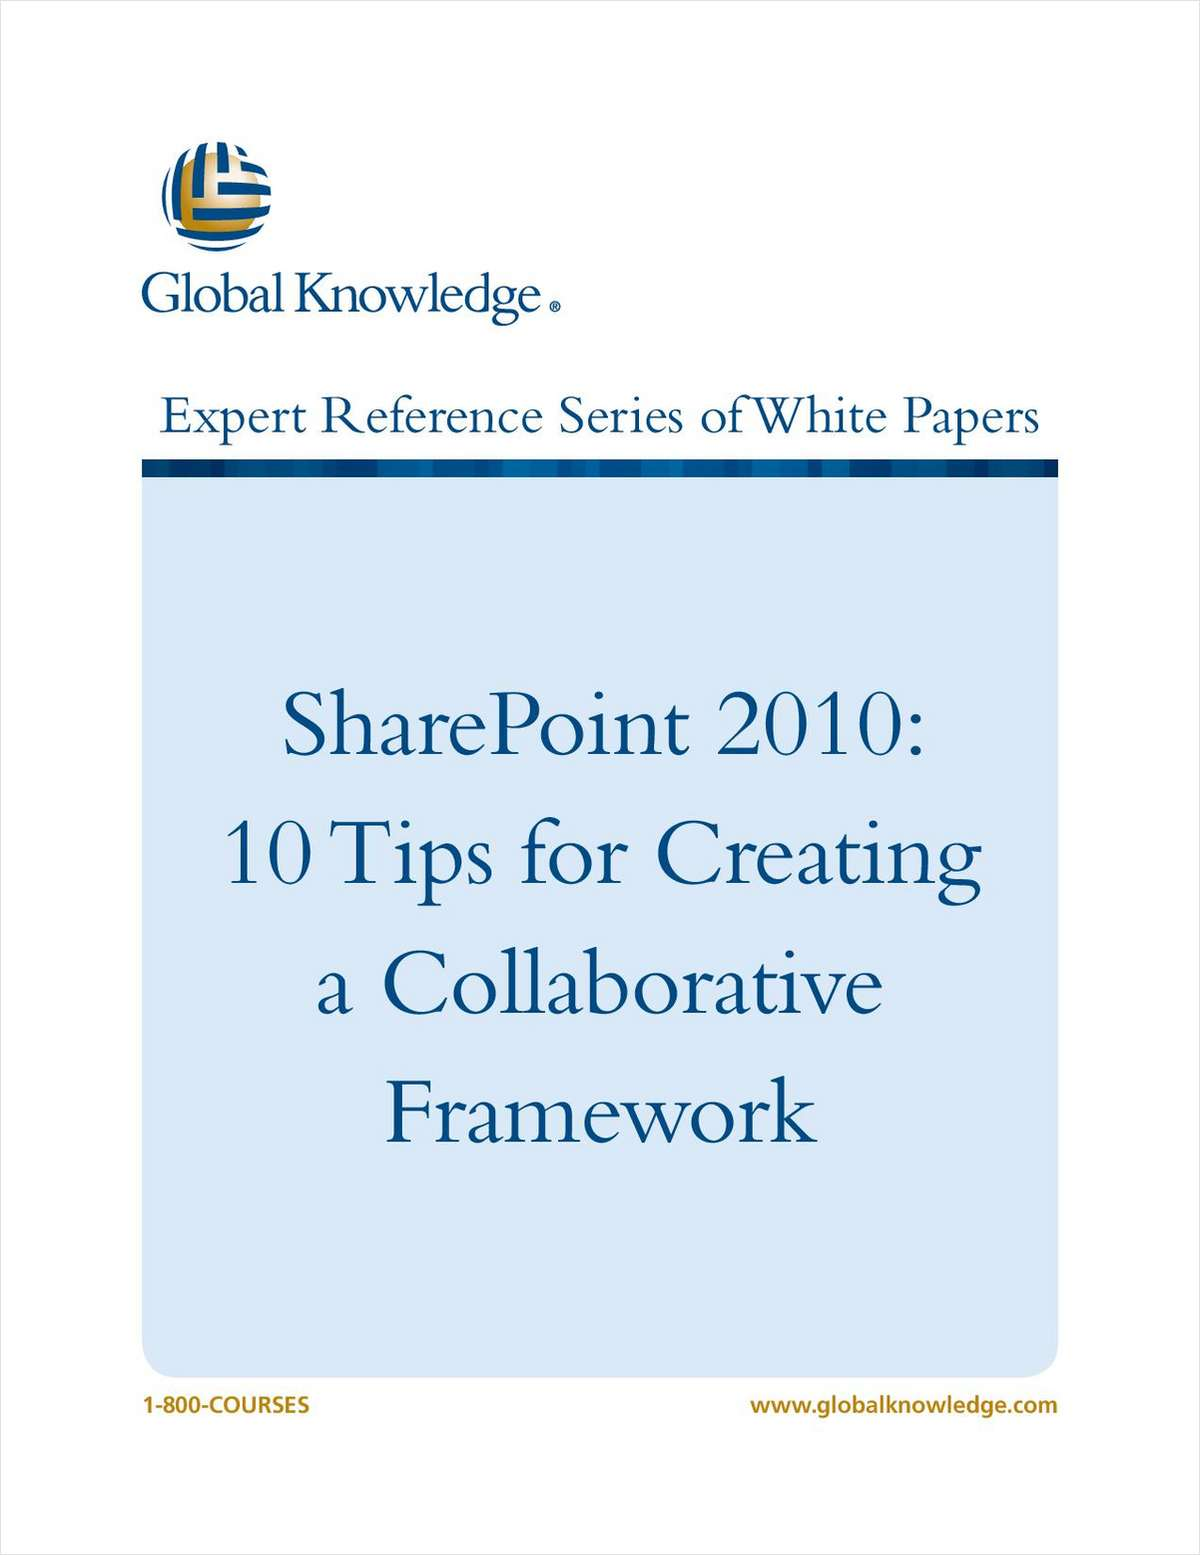 SharePoint 2010: Ten Tips for Creating a Collaborative Framework for your Company